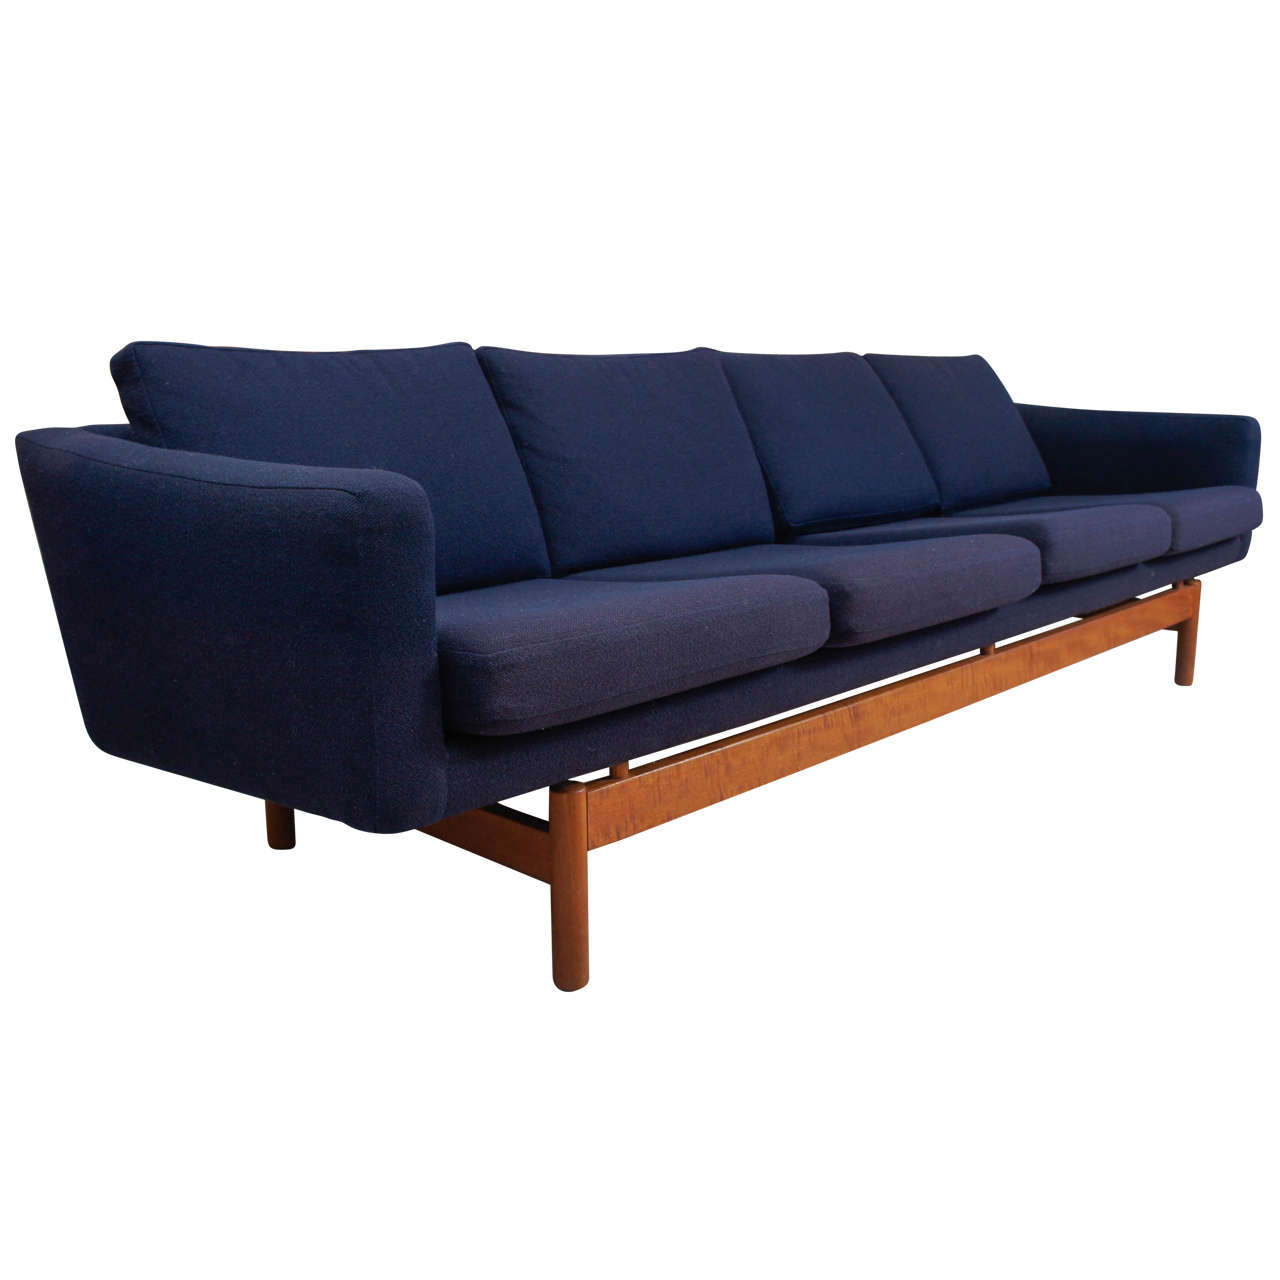 1970s Danish Modern Sofa At 1stdibs